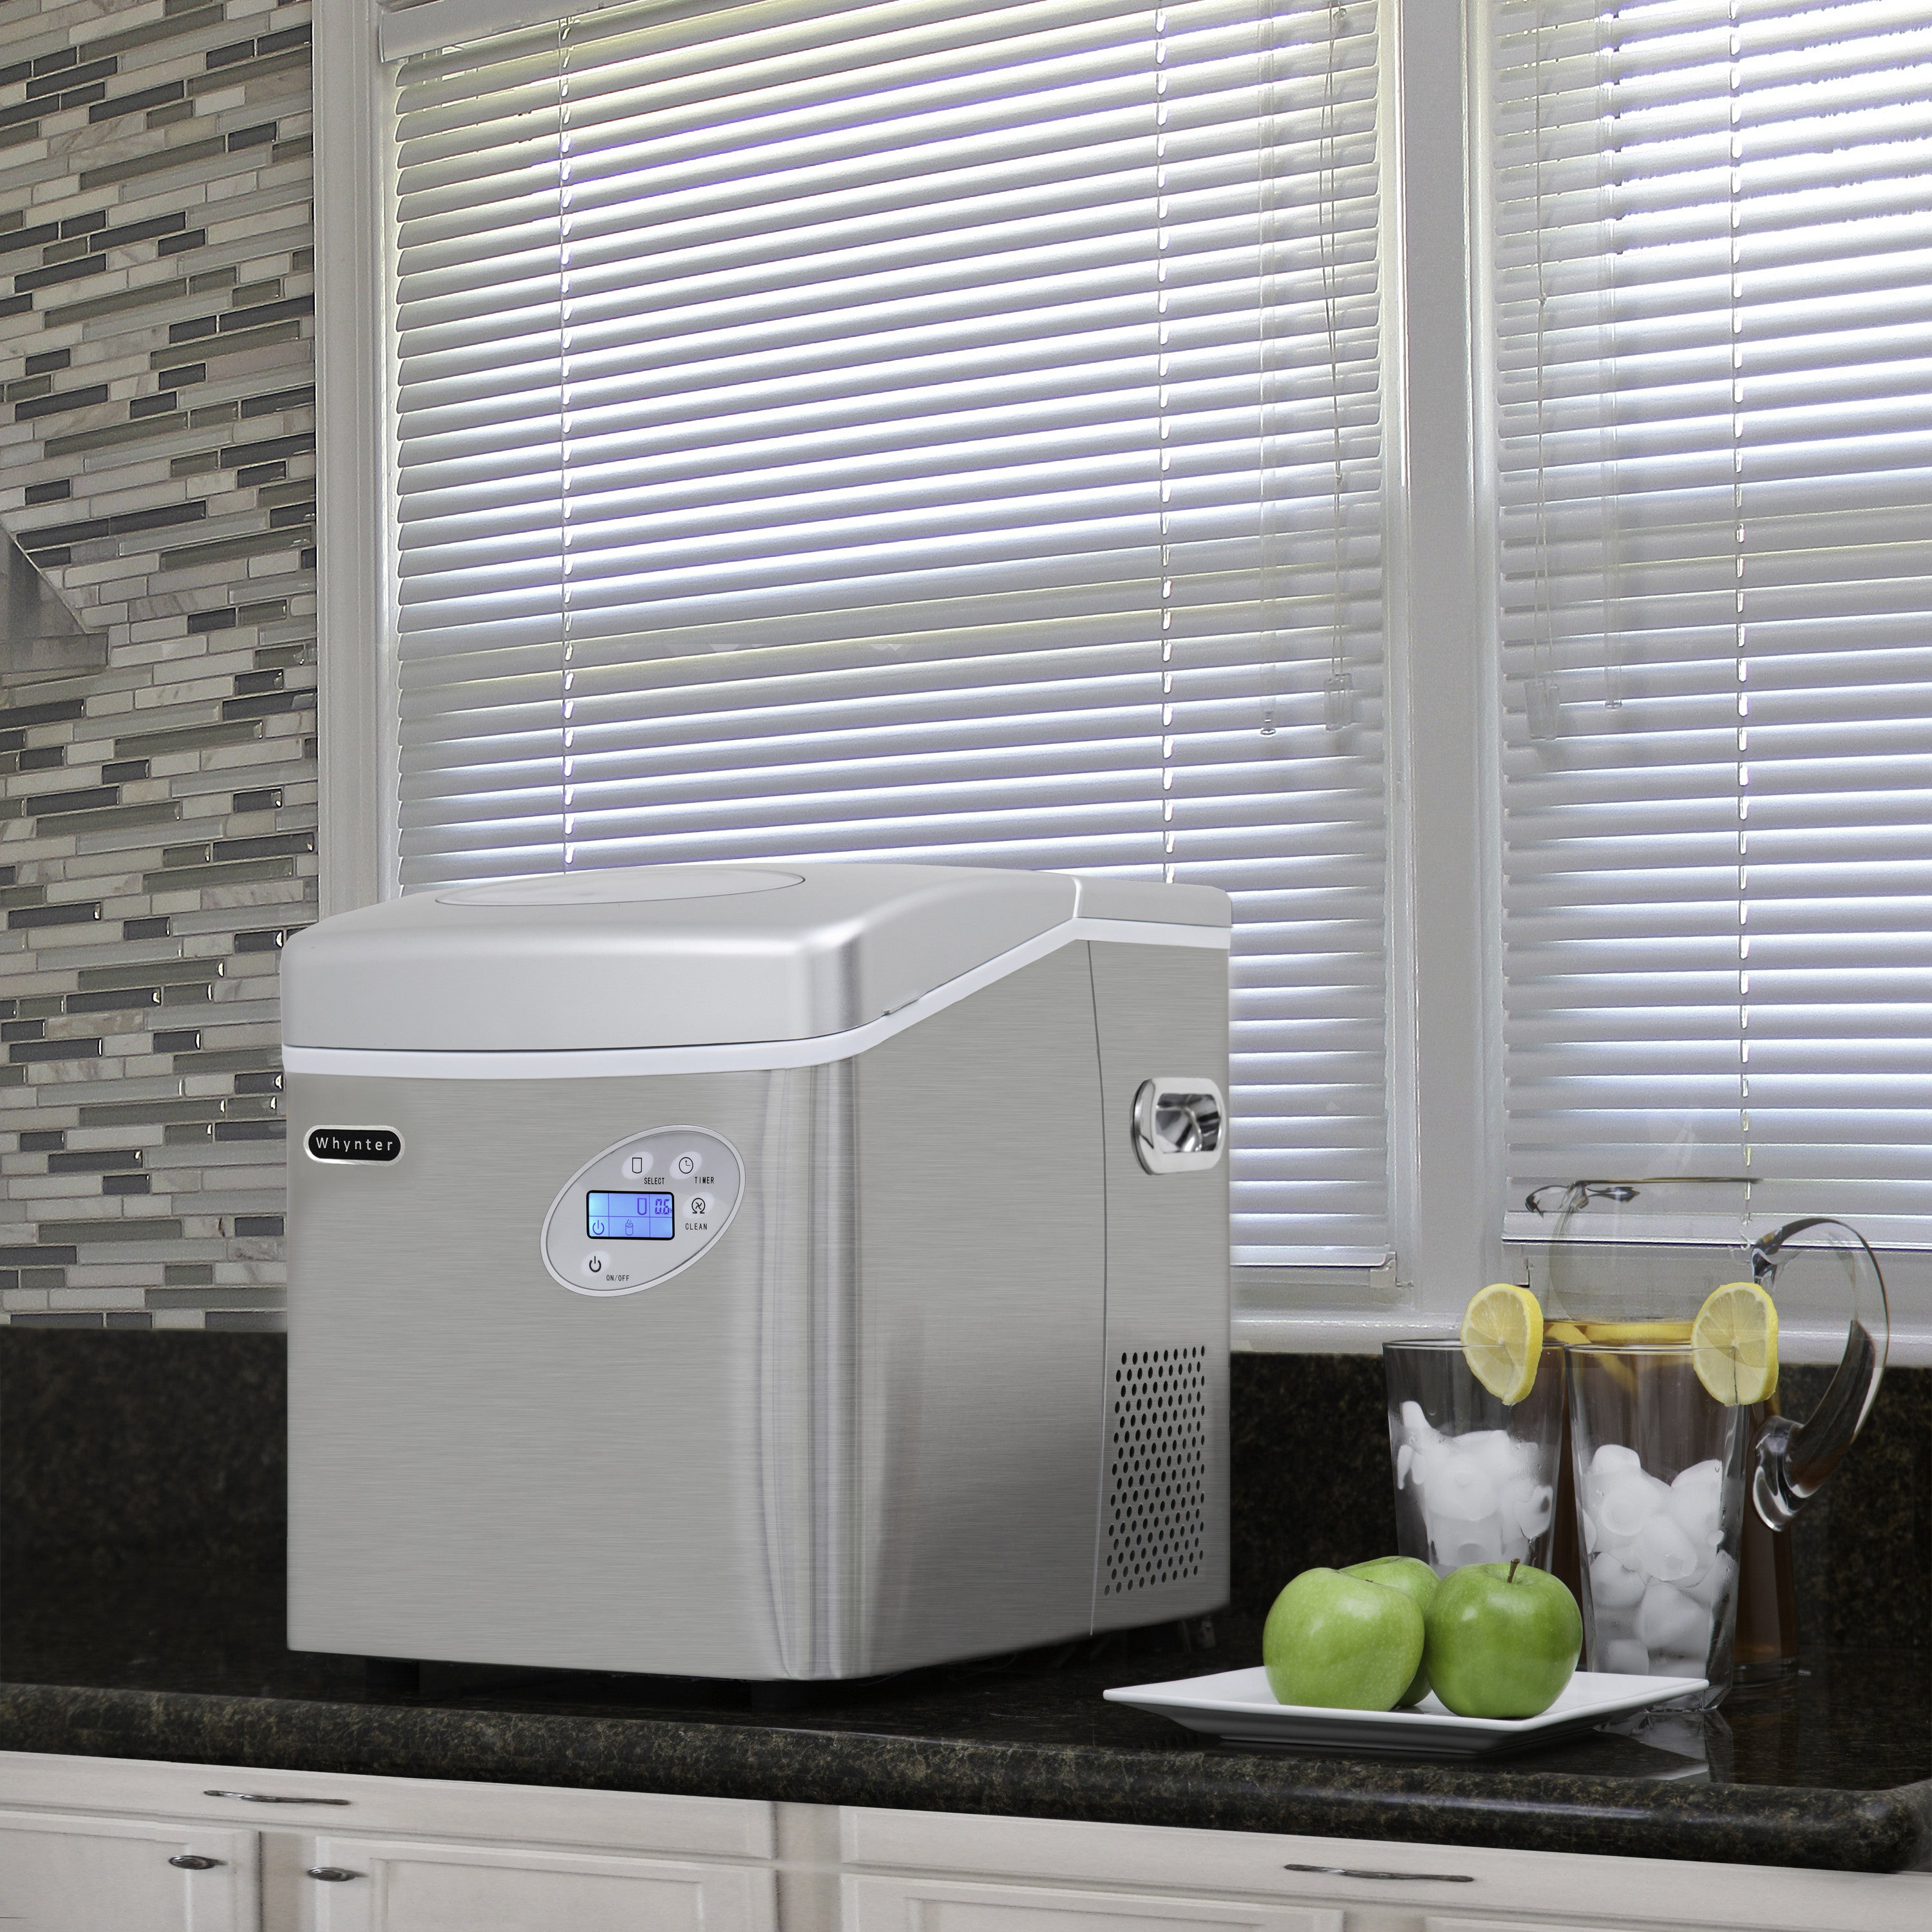 Portable ice maker with water hook up